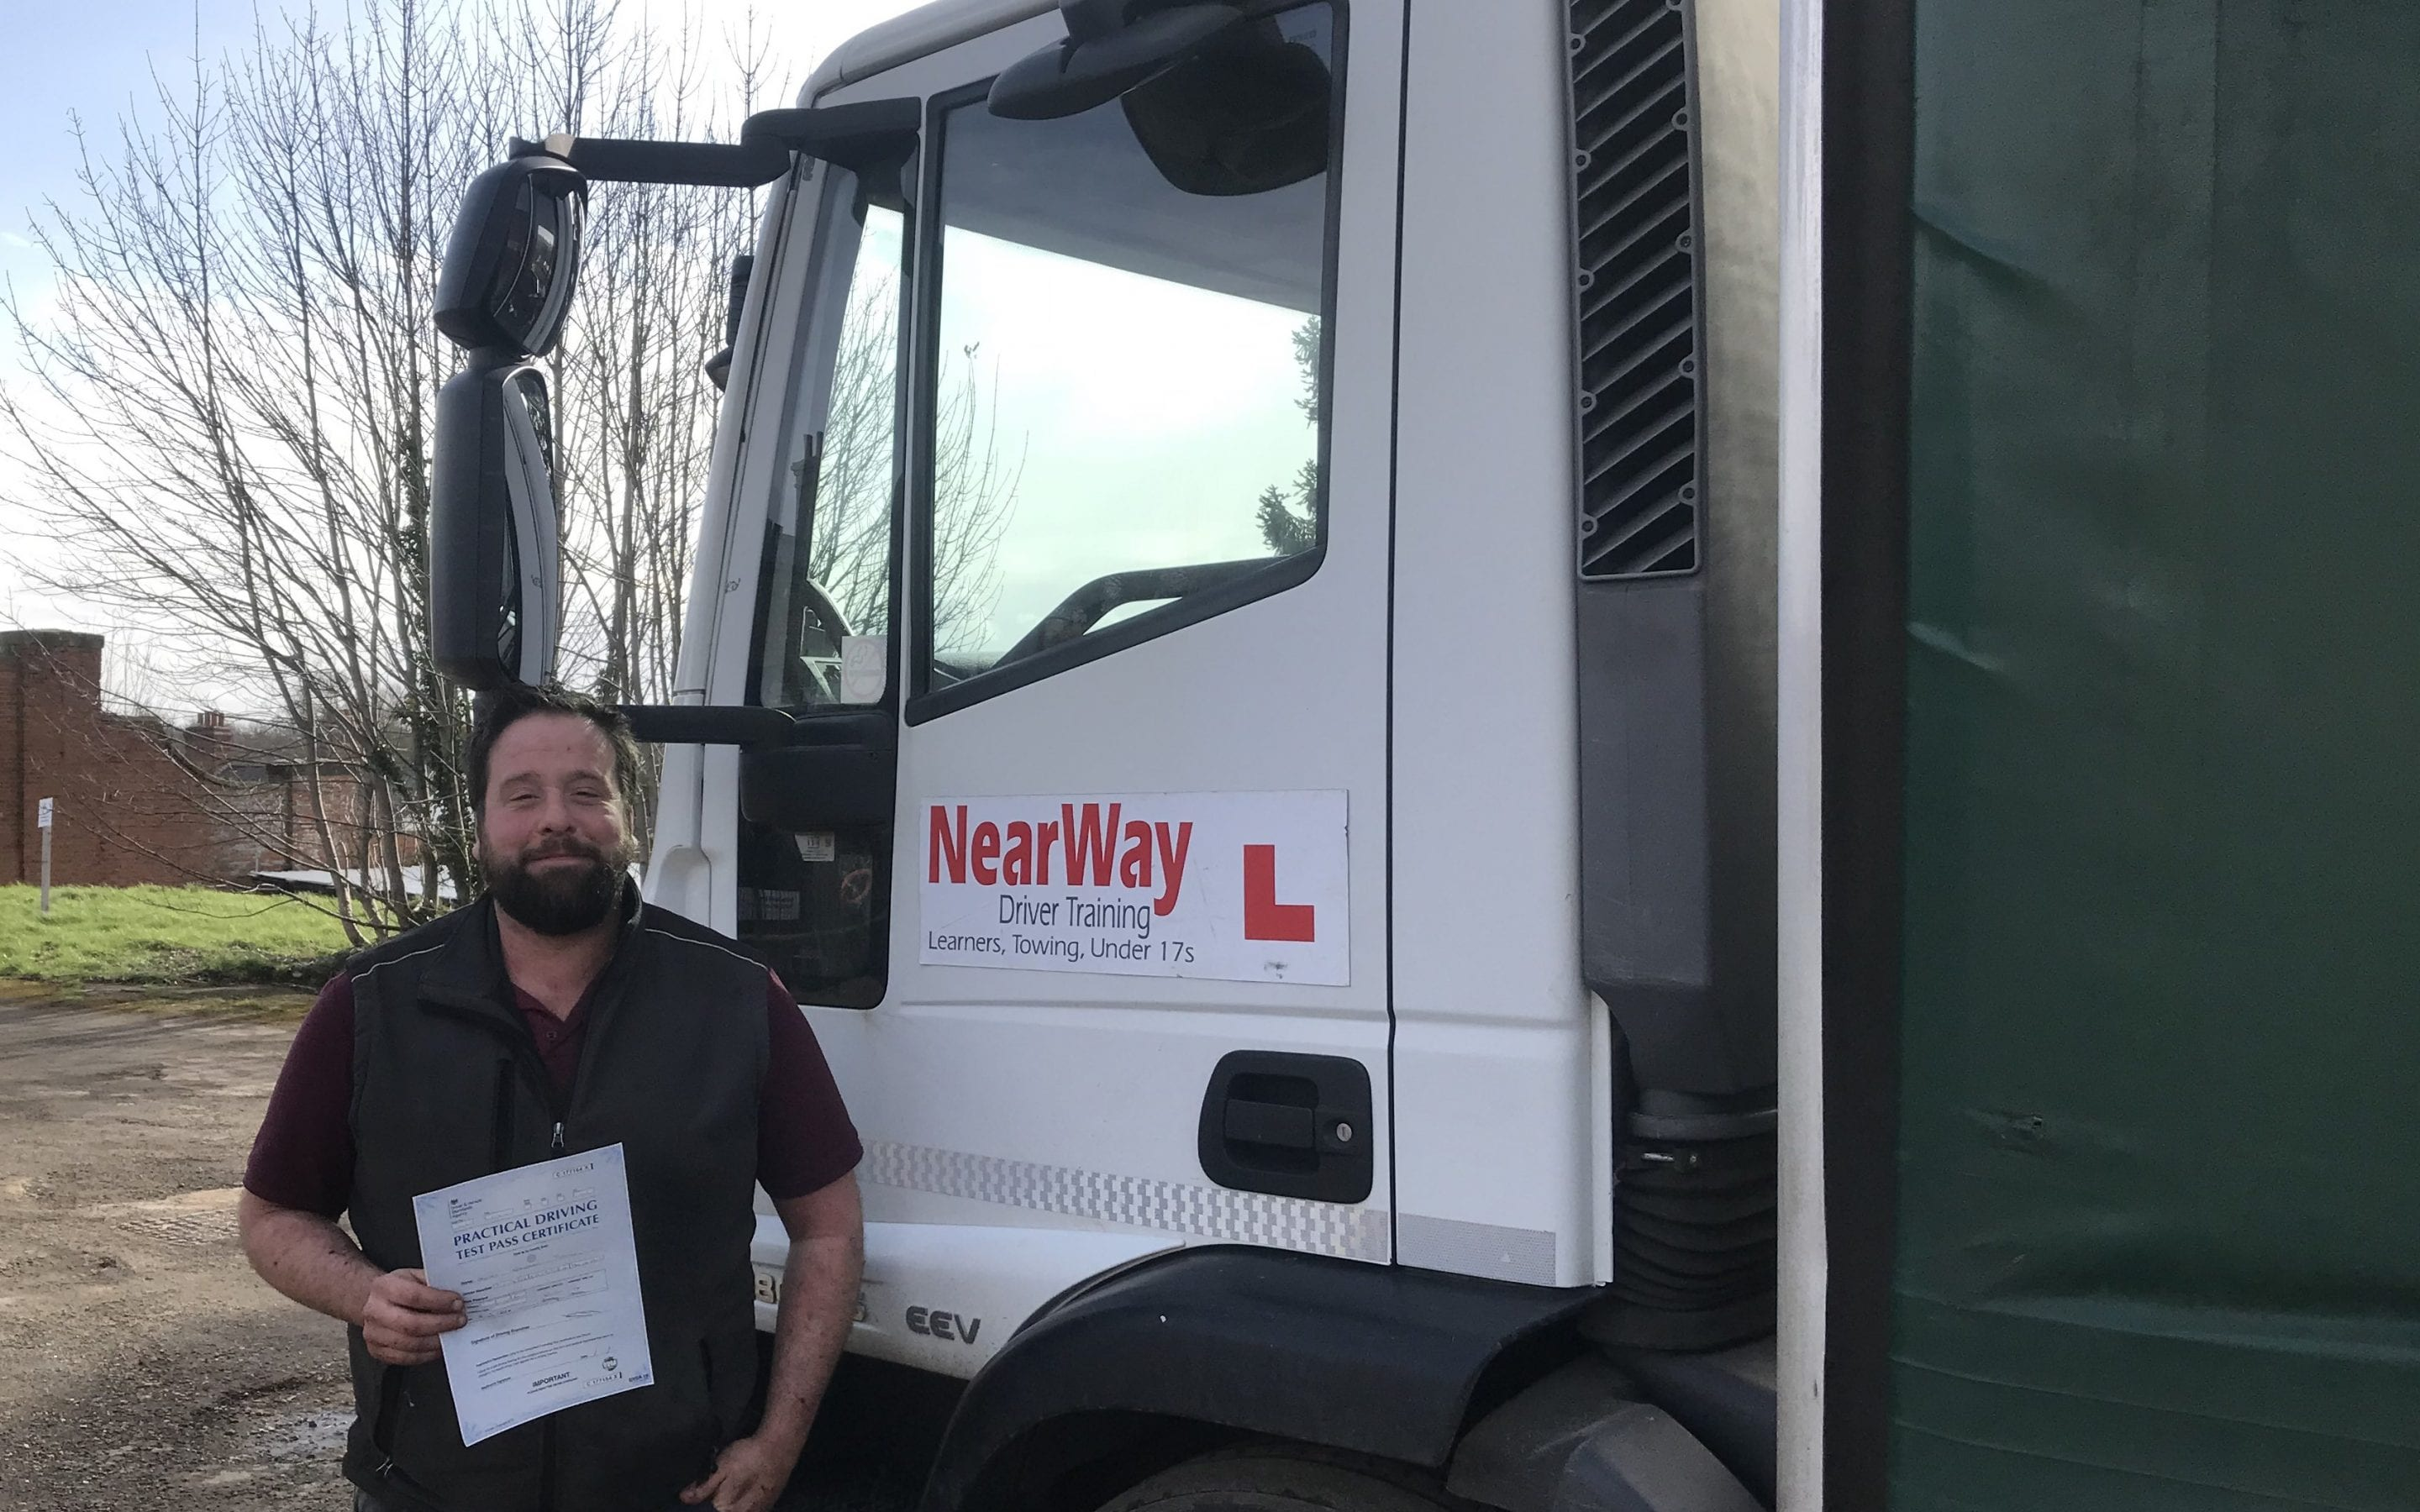 Chris Pearson HGV Class 2 driving course